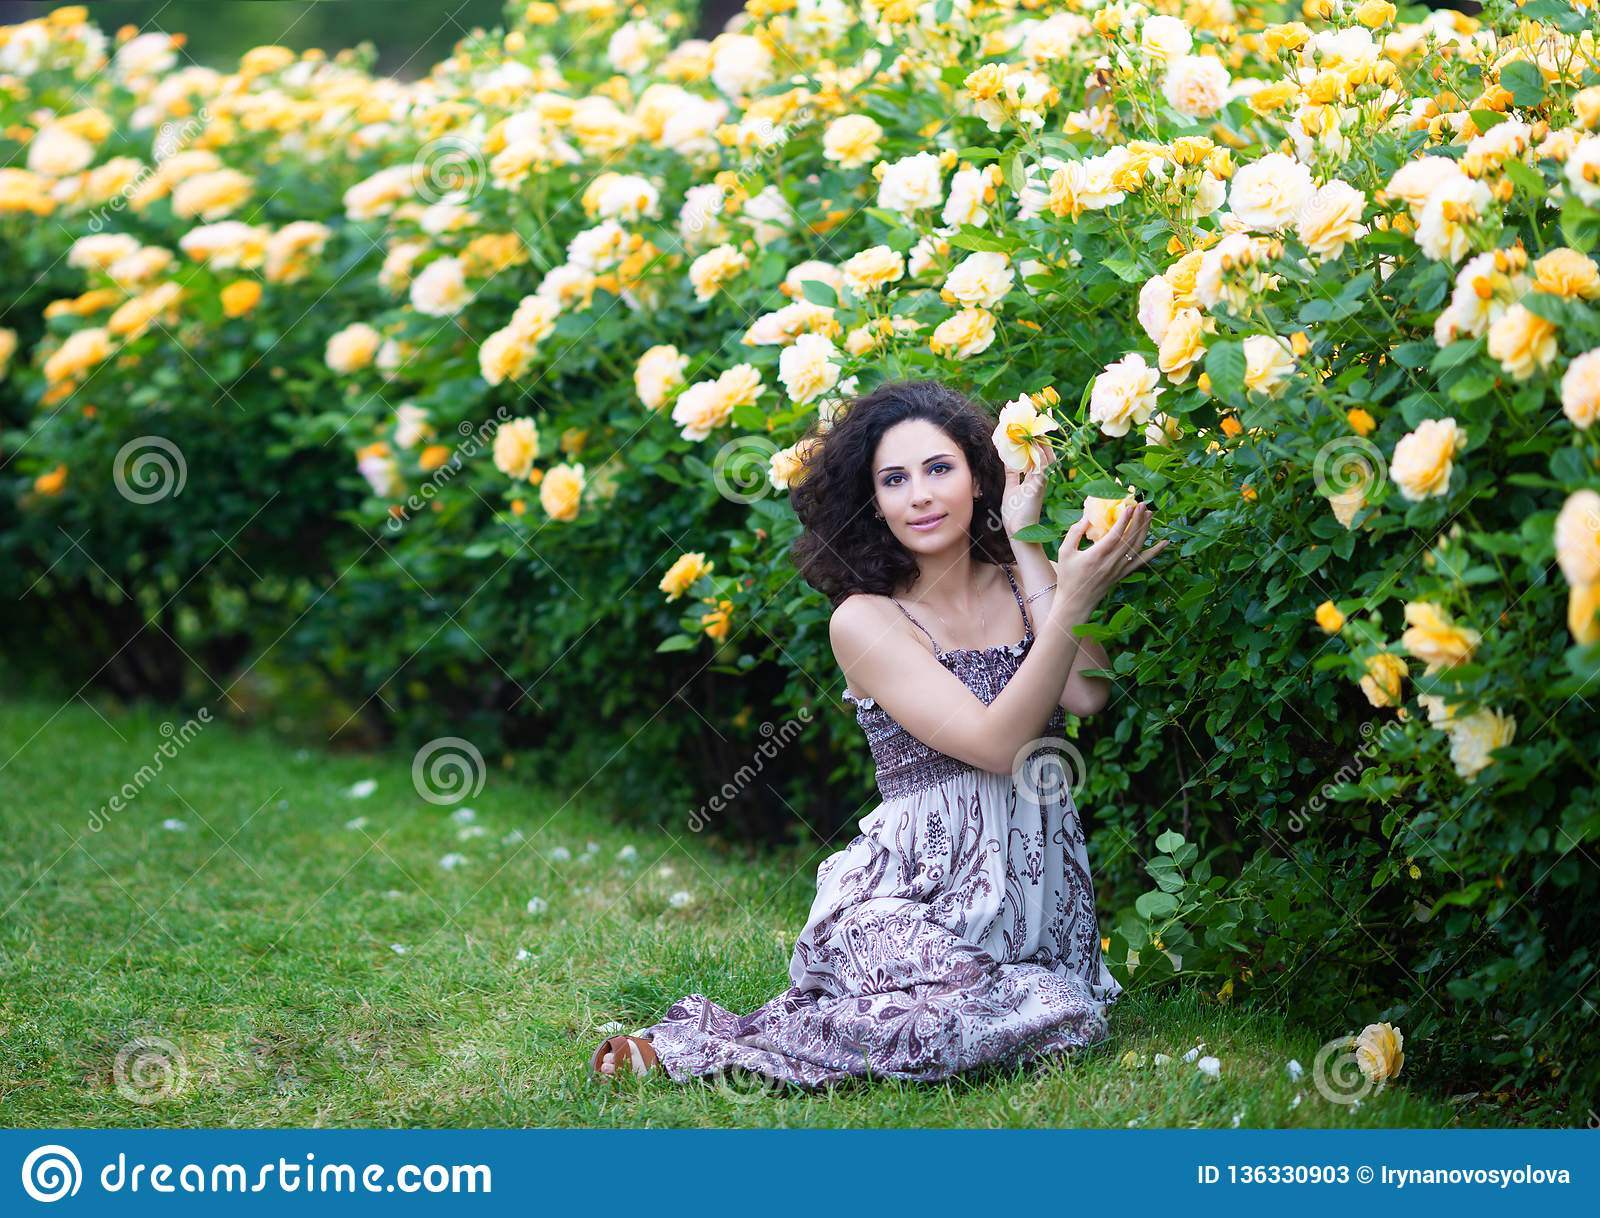 Young brunette Caucasian woman with curly hair sitting on green grass near yellow roses Bush in a garden, looking straight to the